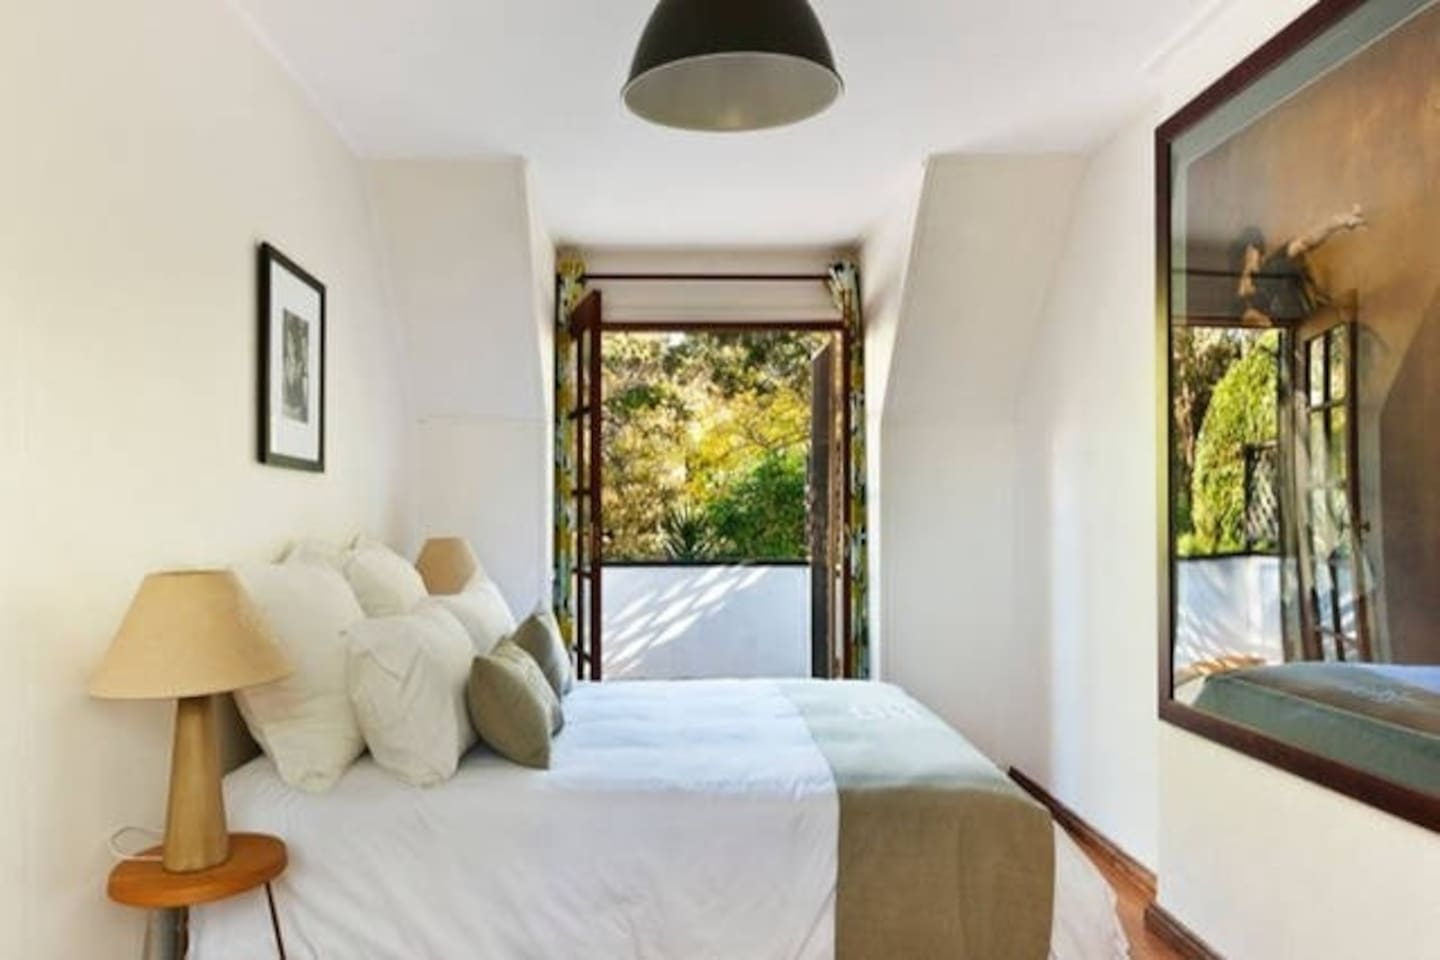 Large 2nd storey bedroom that opens to balcony overlooking the park